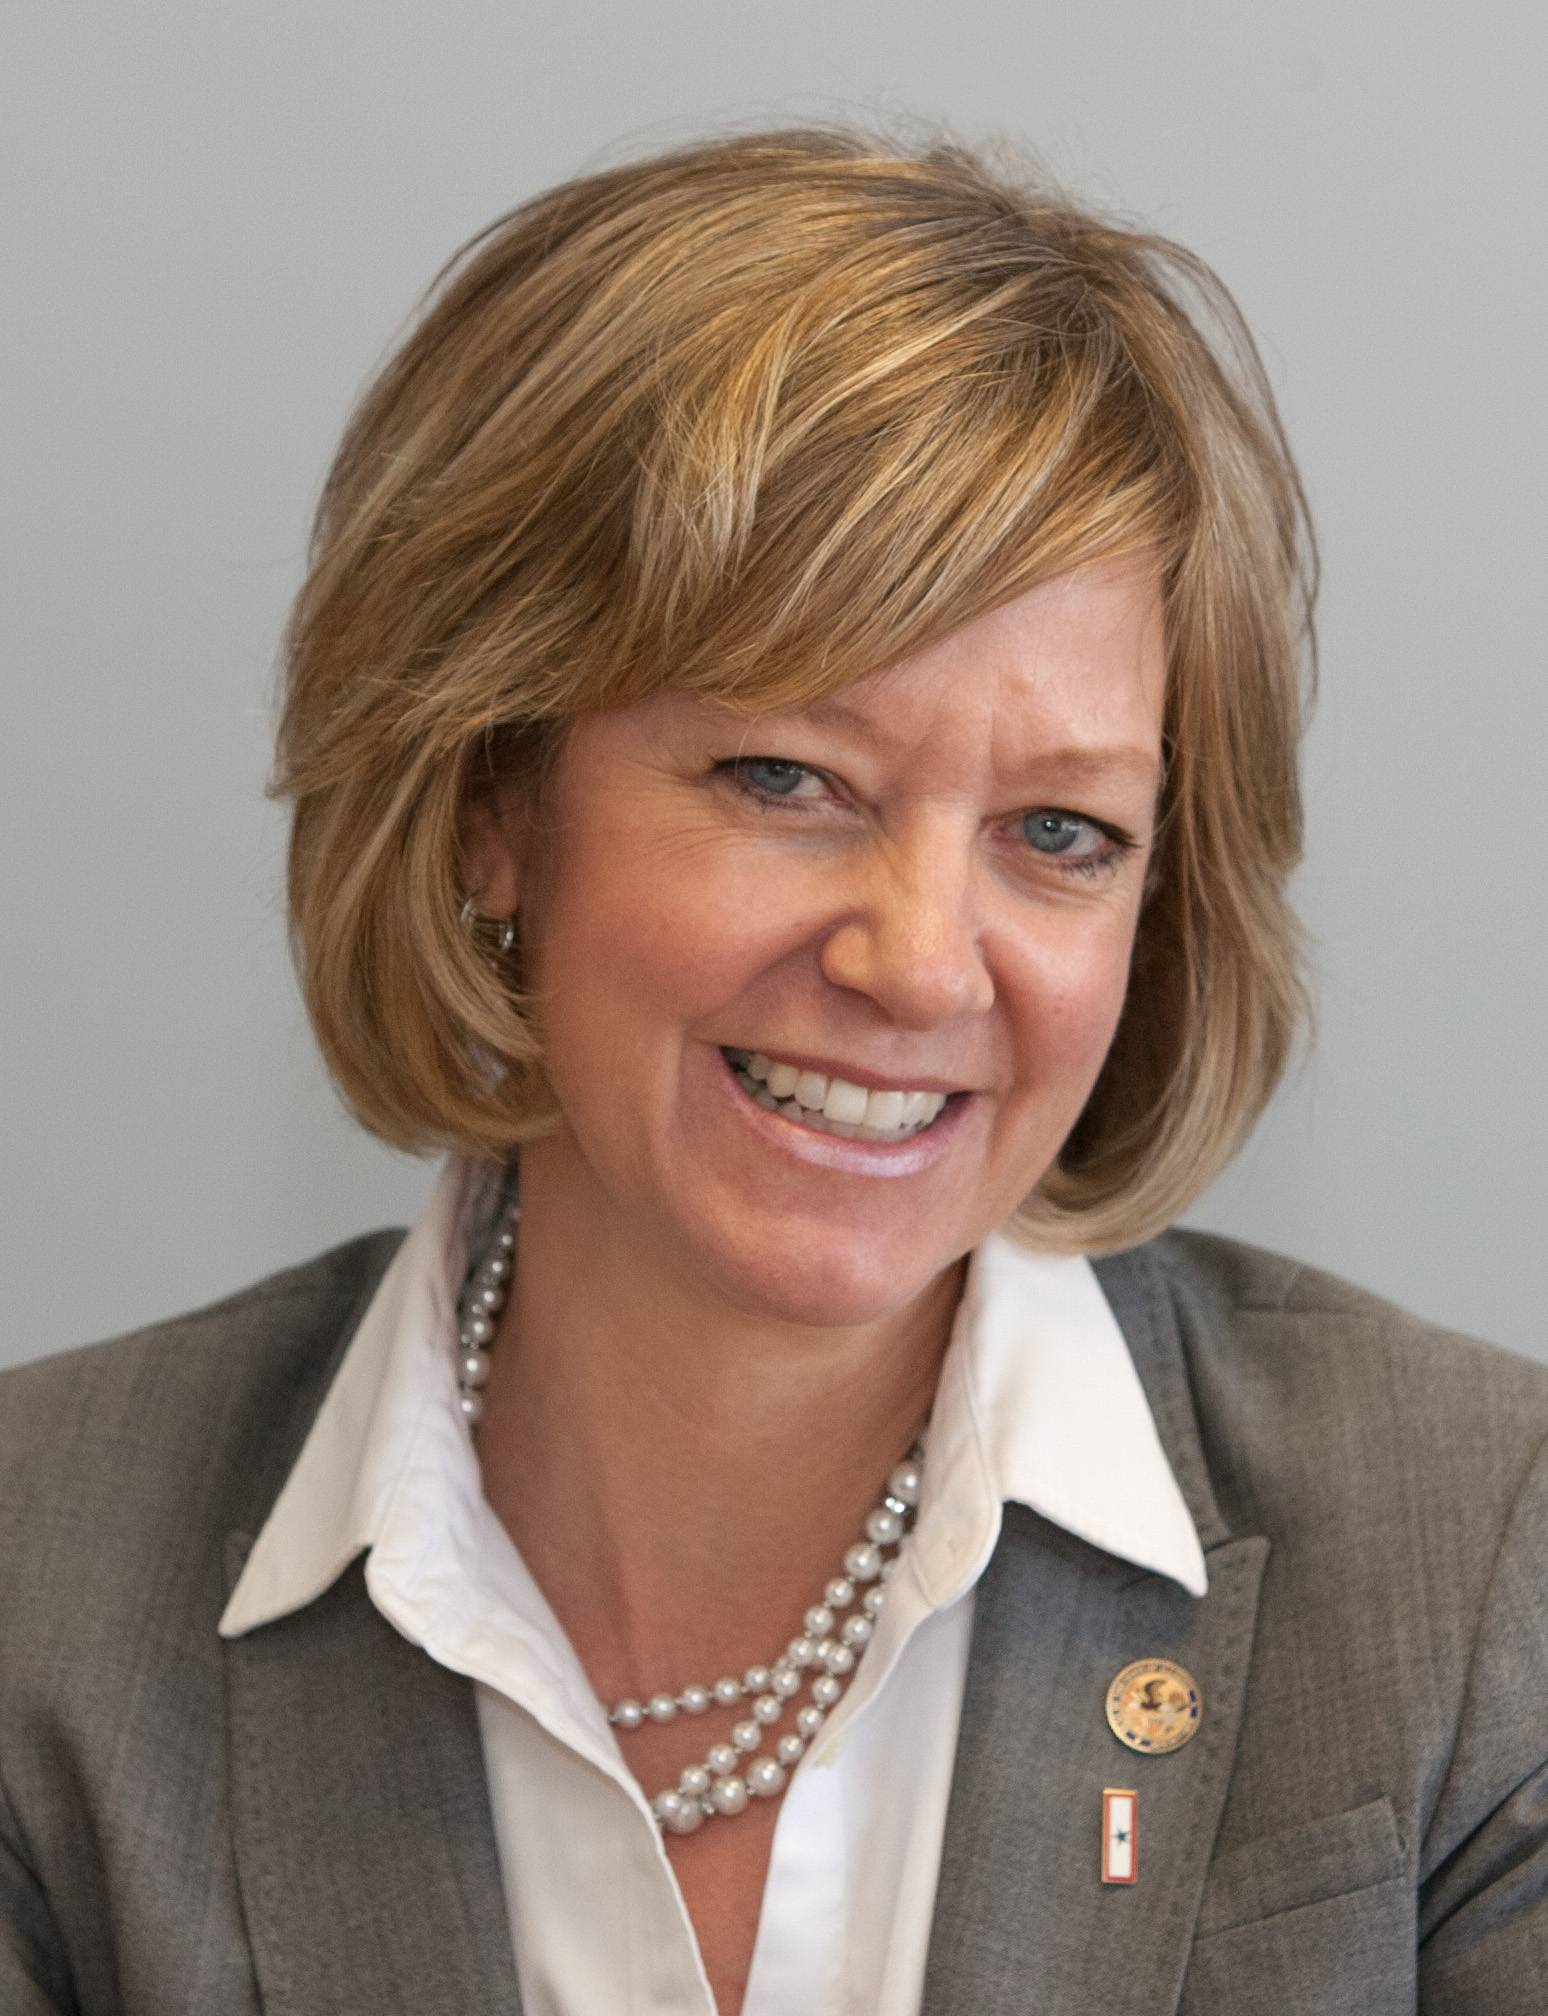 Jeanne Ives: I have record of standing up to the system